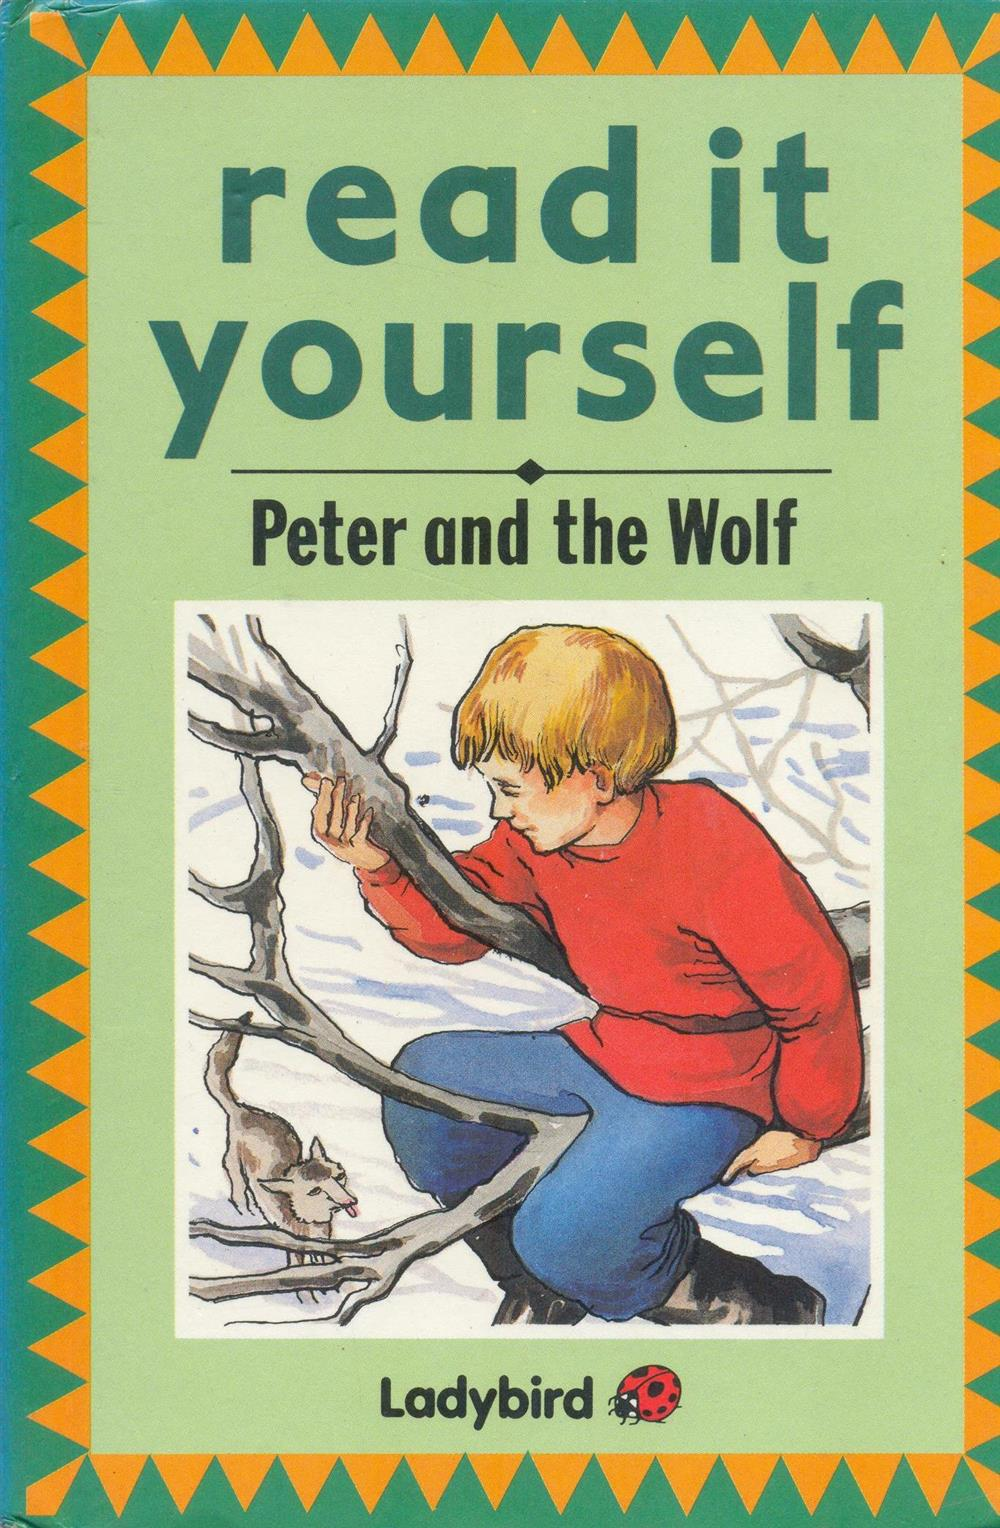 Peter and the wolf 001.jpg